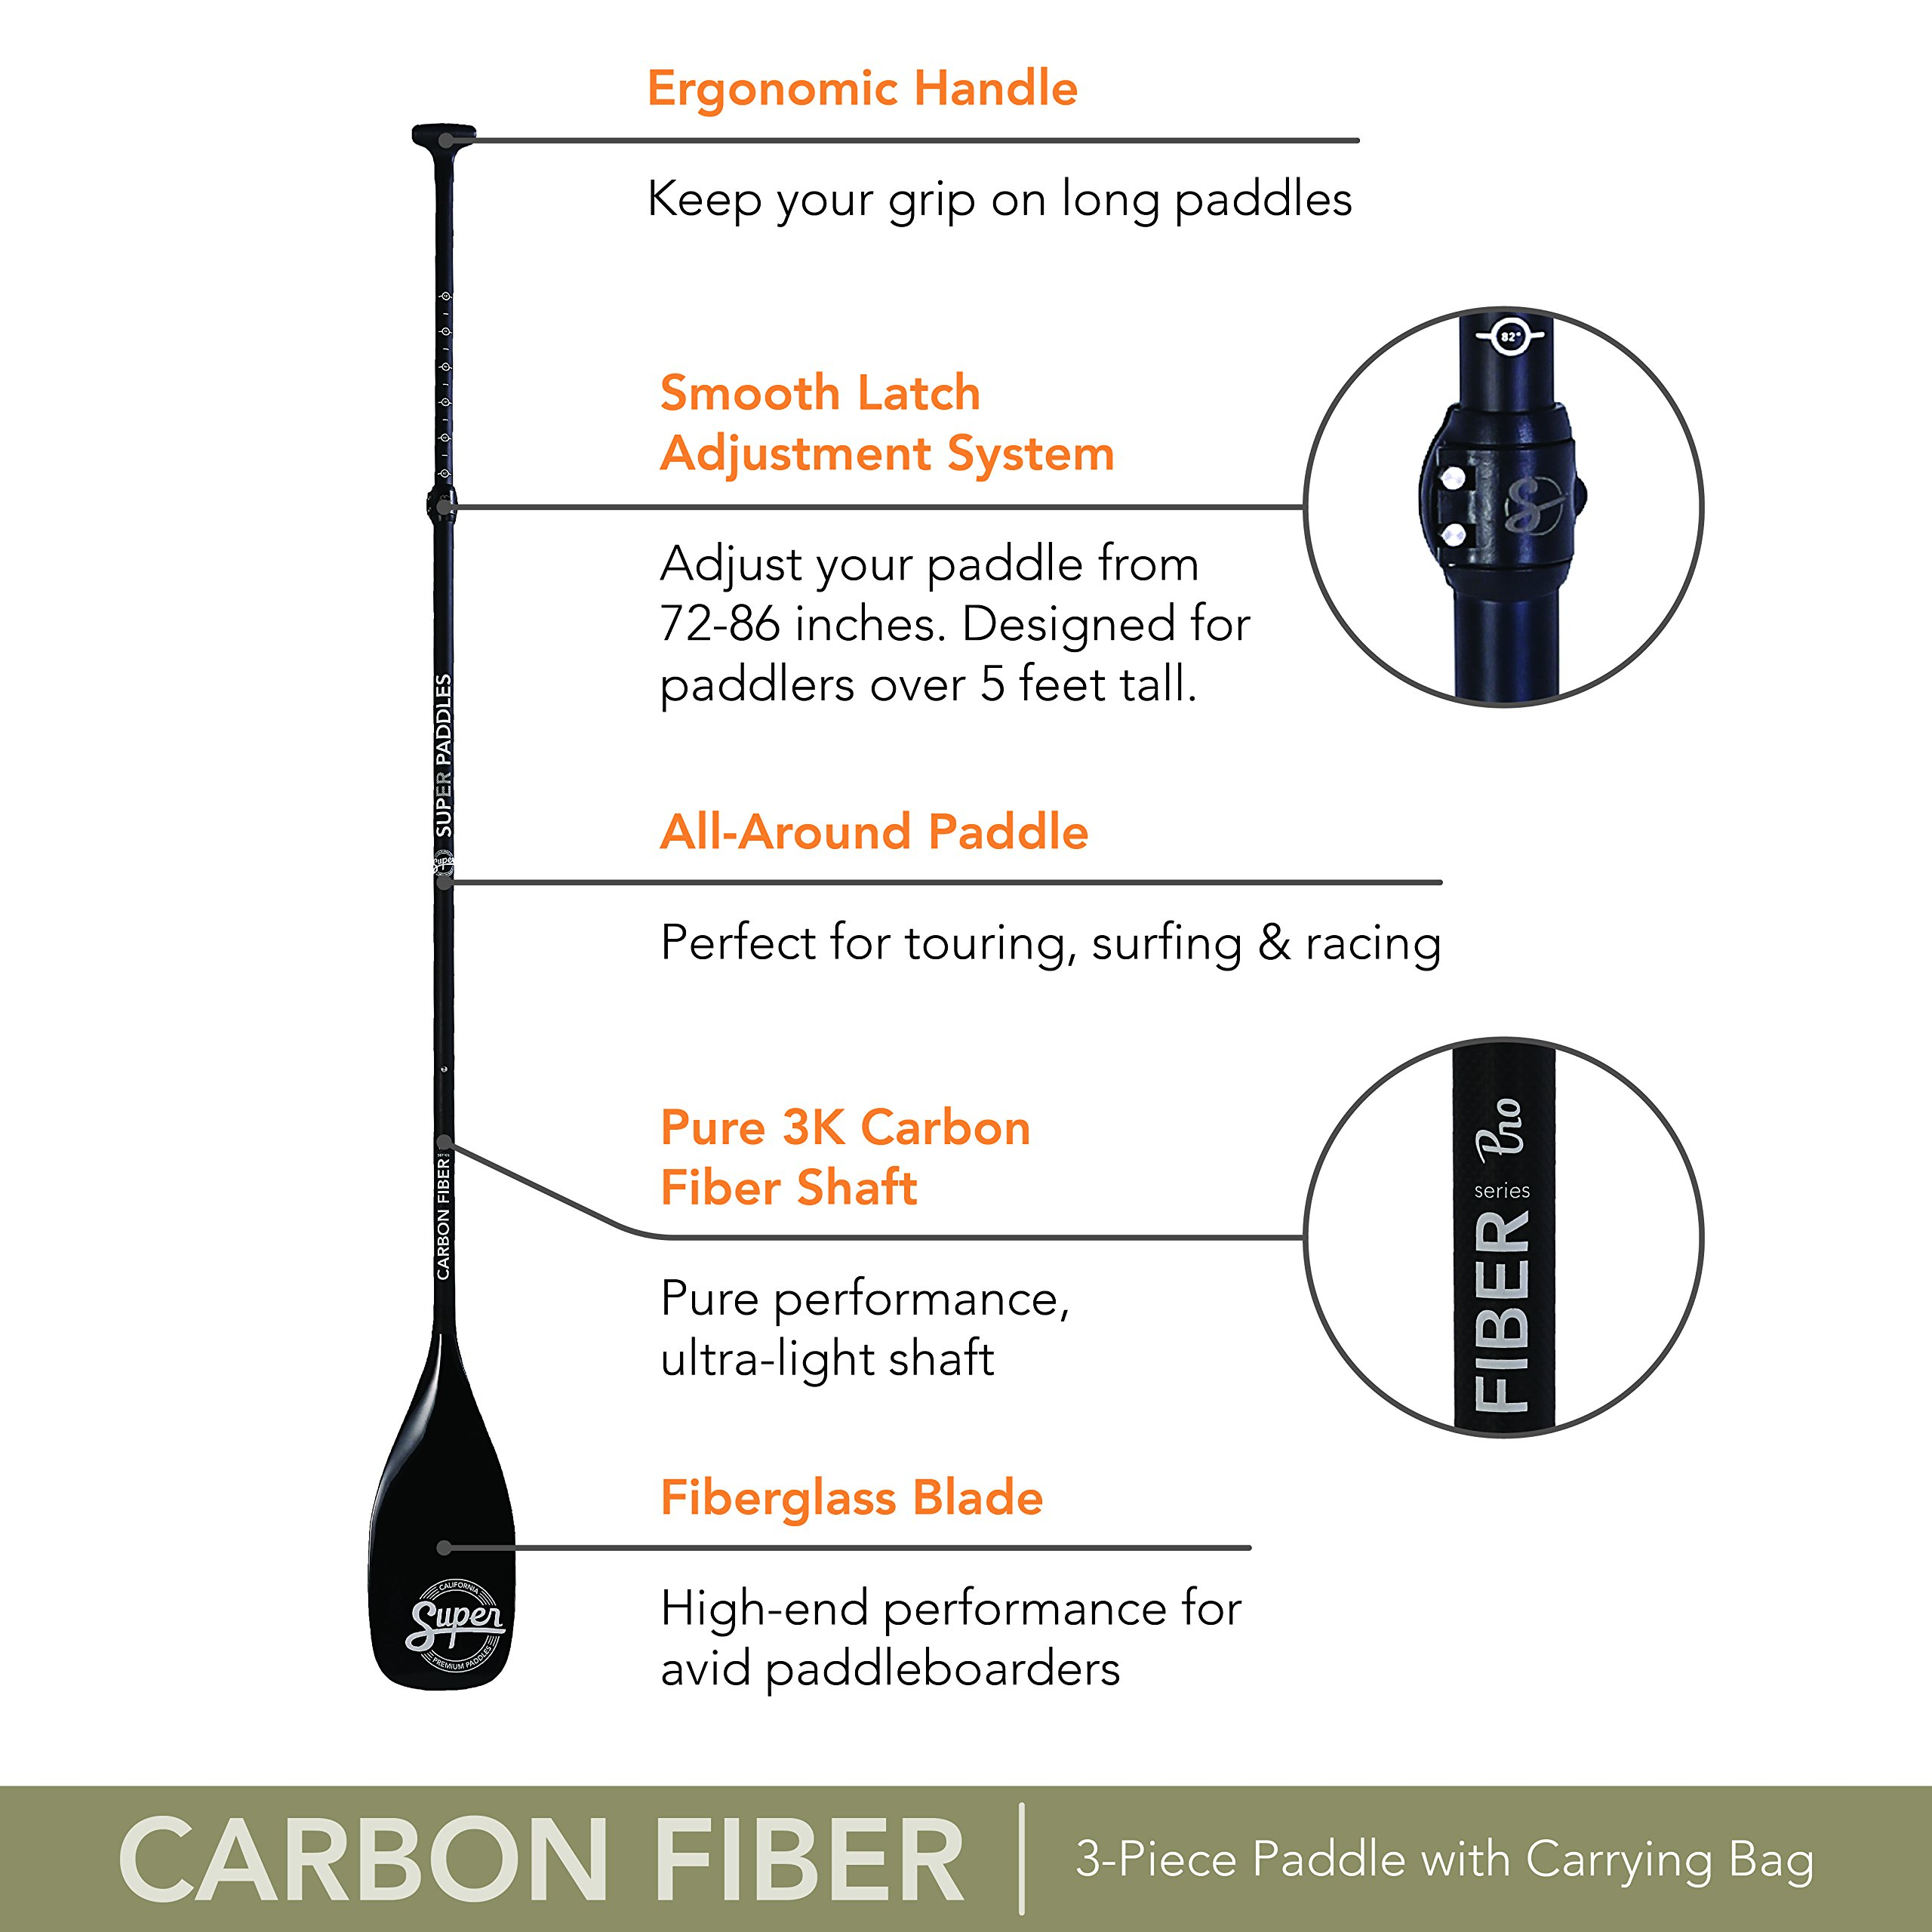 Super Paddles Carbon Fiber SUP Paddle - 3-Piece Adjustable Stand Up Paddle with Paddle Bag Carbon Fiber Series Pro - Carbon Fiber Shaft, Fiberglass Blade by Super Paddles (Image #4)